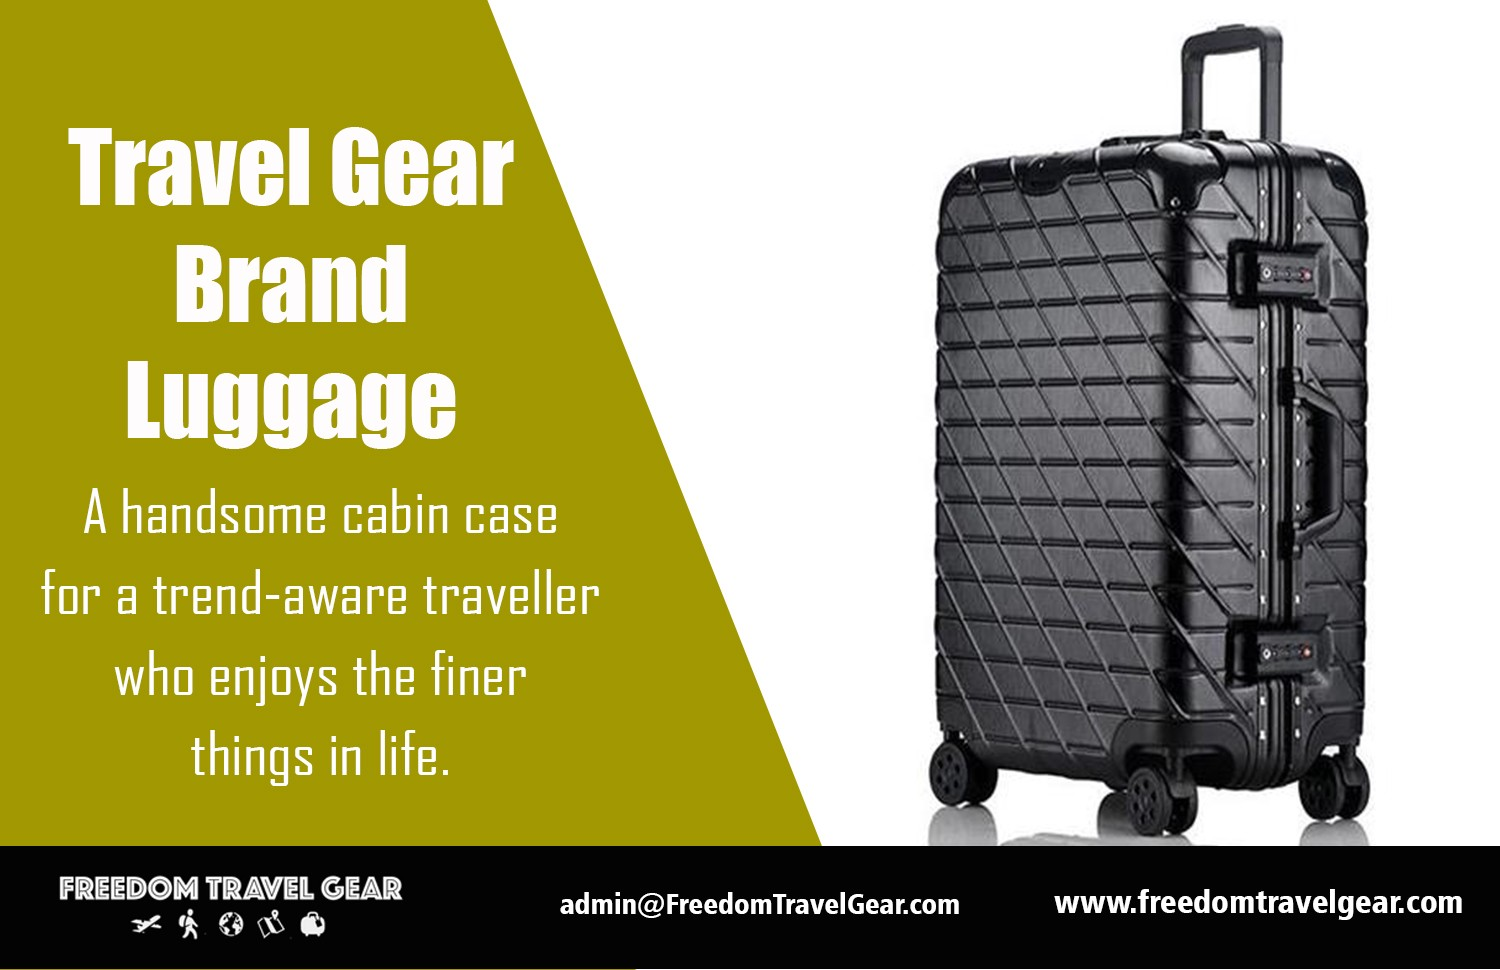 2018 Travel Gear Travel Gear Brand Luggage Best Travel Gadgets Medium